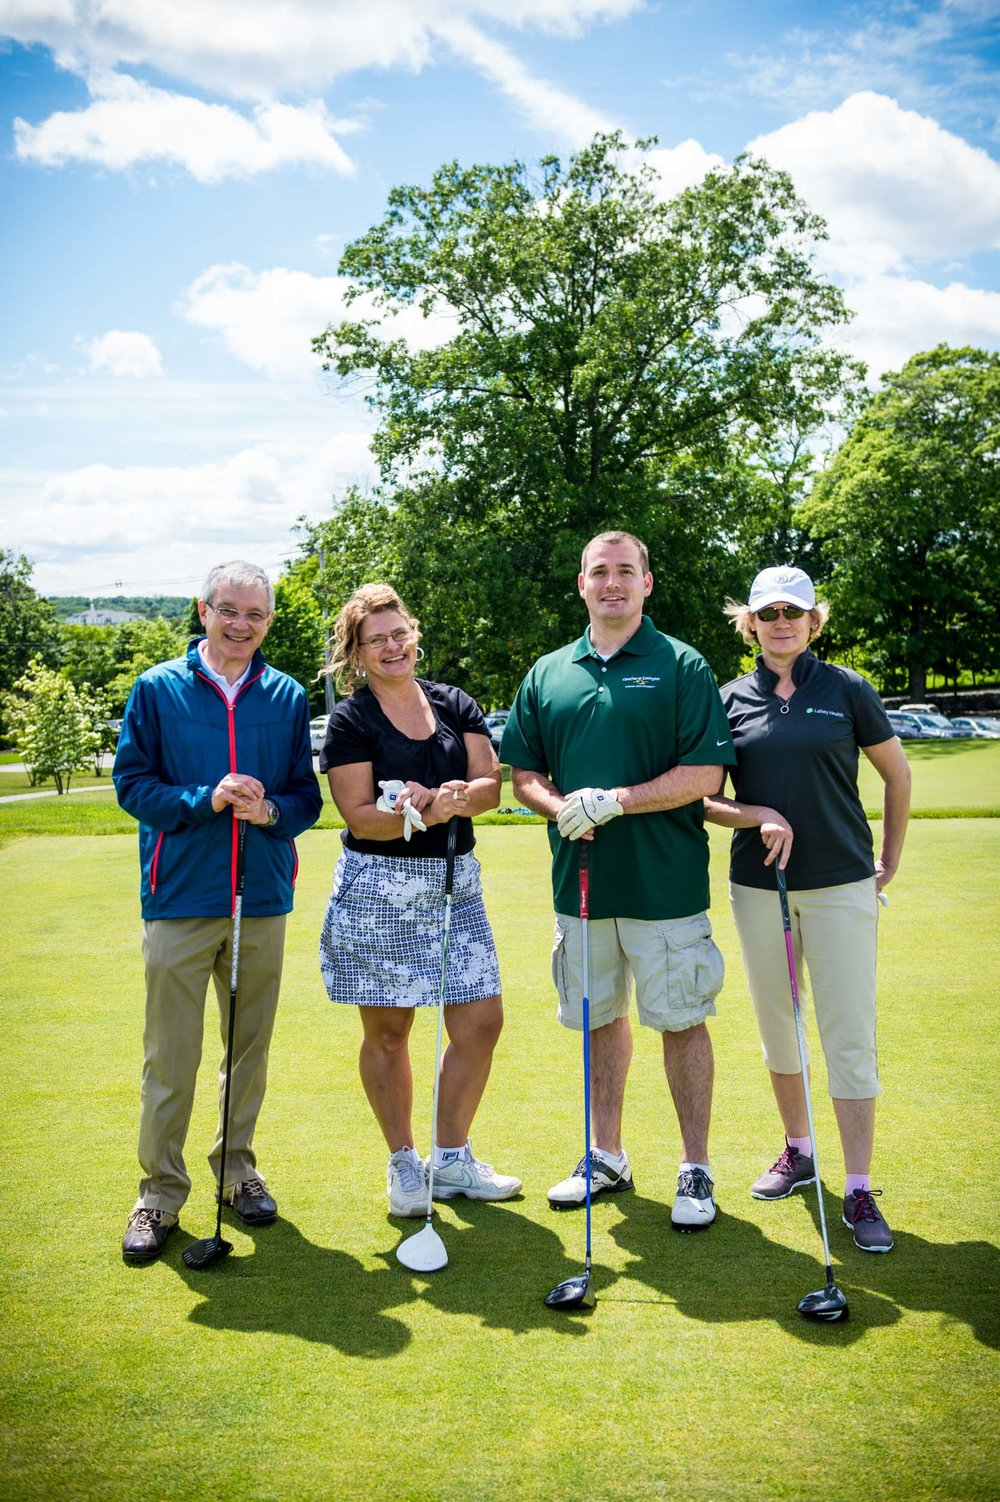 Maura Wayman Photography, Photography, Corporate Photography, Massachusetts, Boston, Metro West, events, Corporate events, Photographer, Functions, Parties, Fundraisers, Lahey, Lahey Health, GOlf TOurnament, golfers, green, fairway,